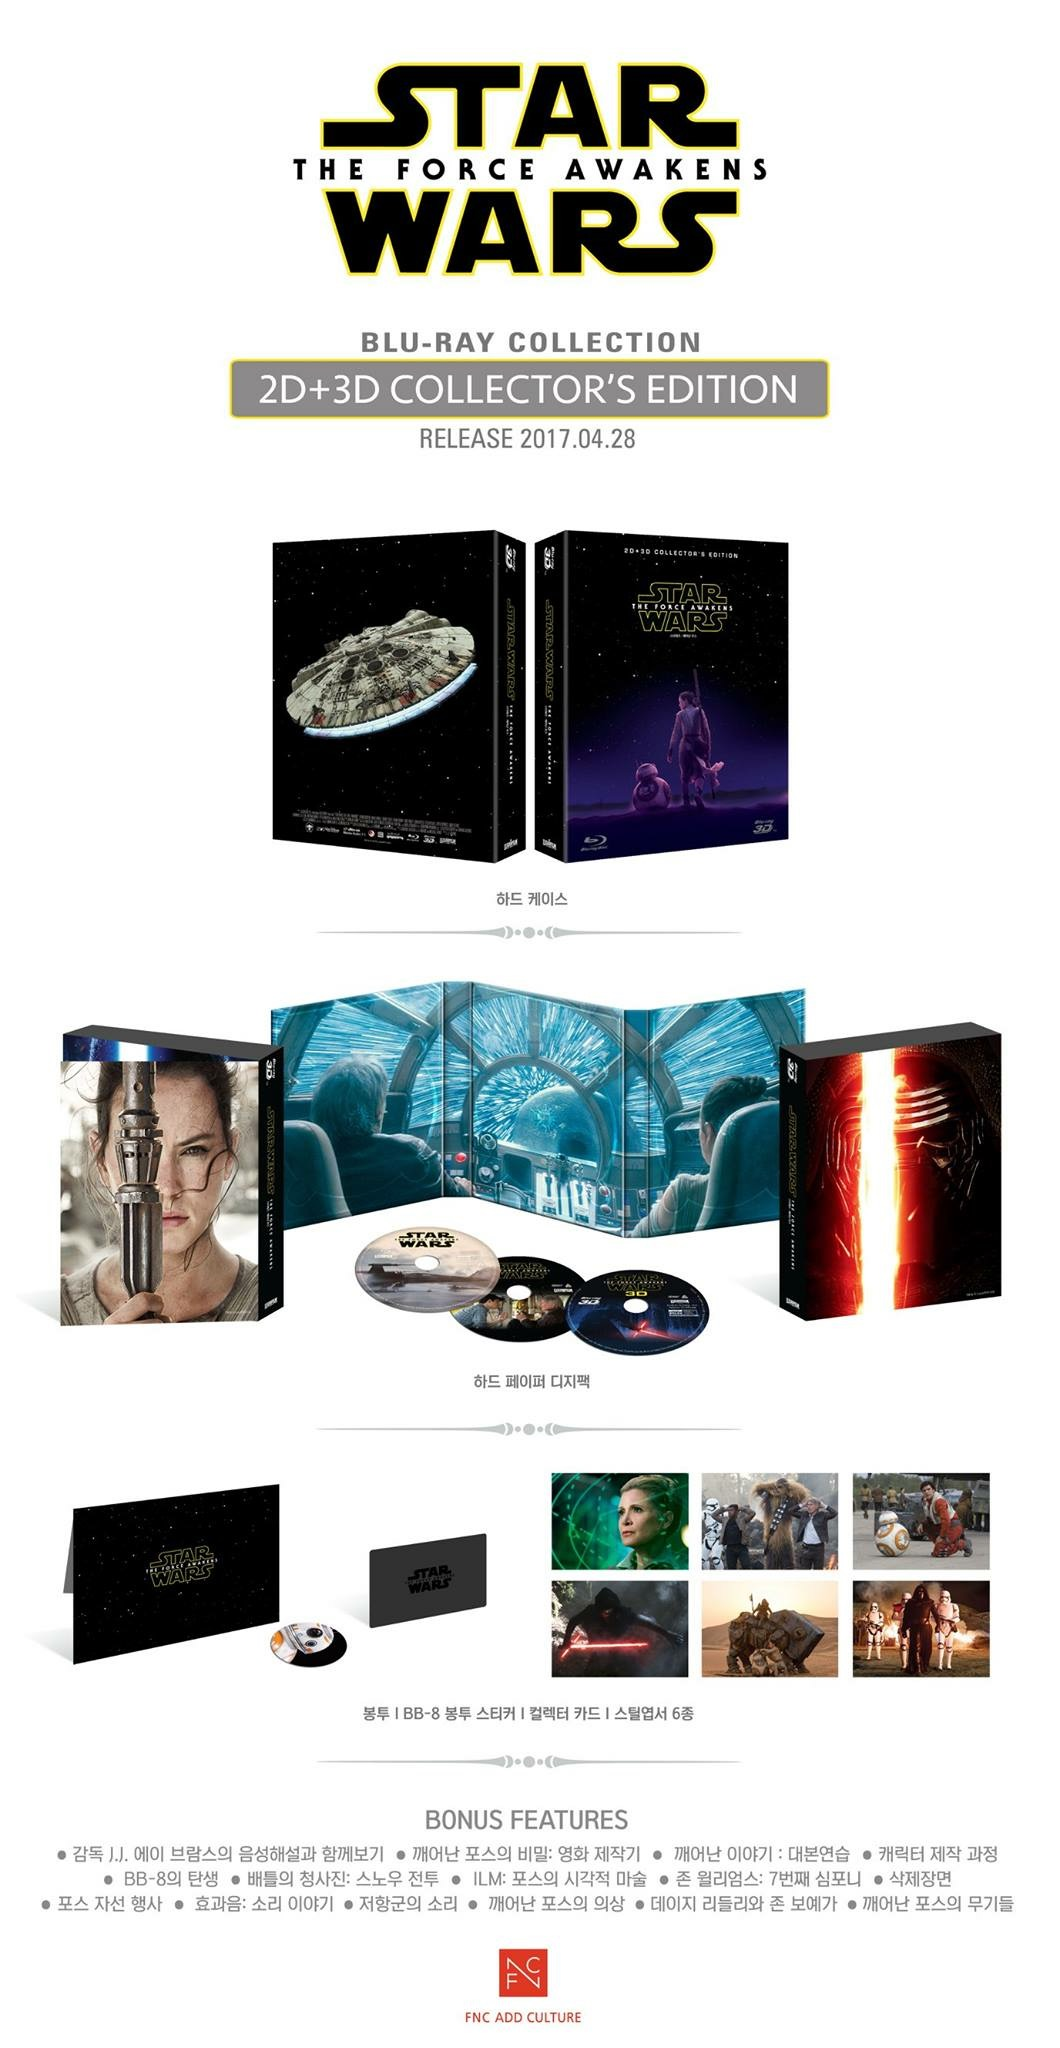 DigiPack - Star Wars: The Force Awakens: Collector's Edition (3D+2D